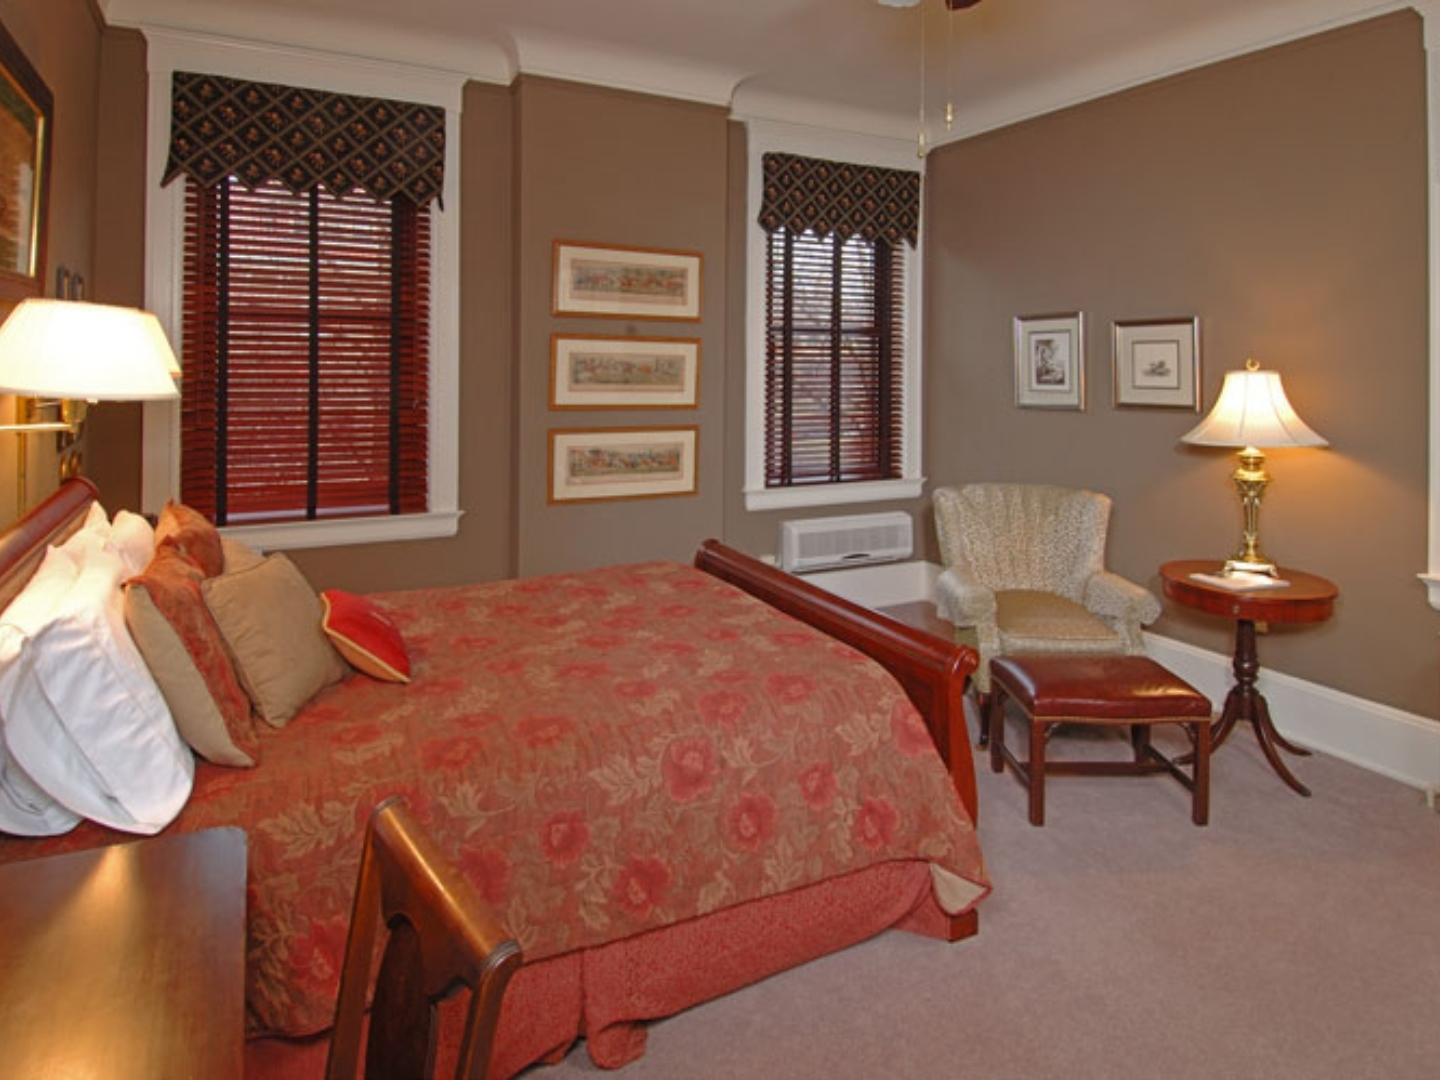 A bedroom with a bed and a chair in a room at The Clifton House Bed and Breakfast.